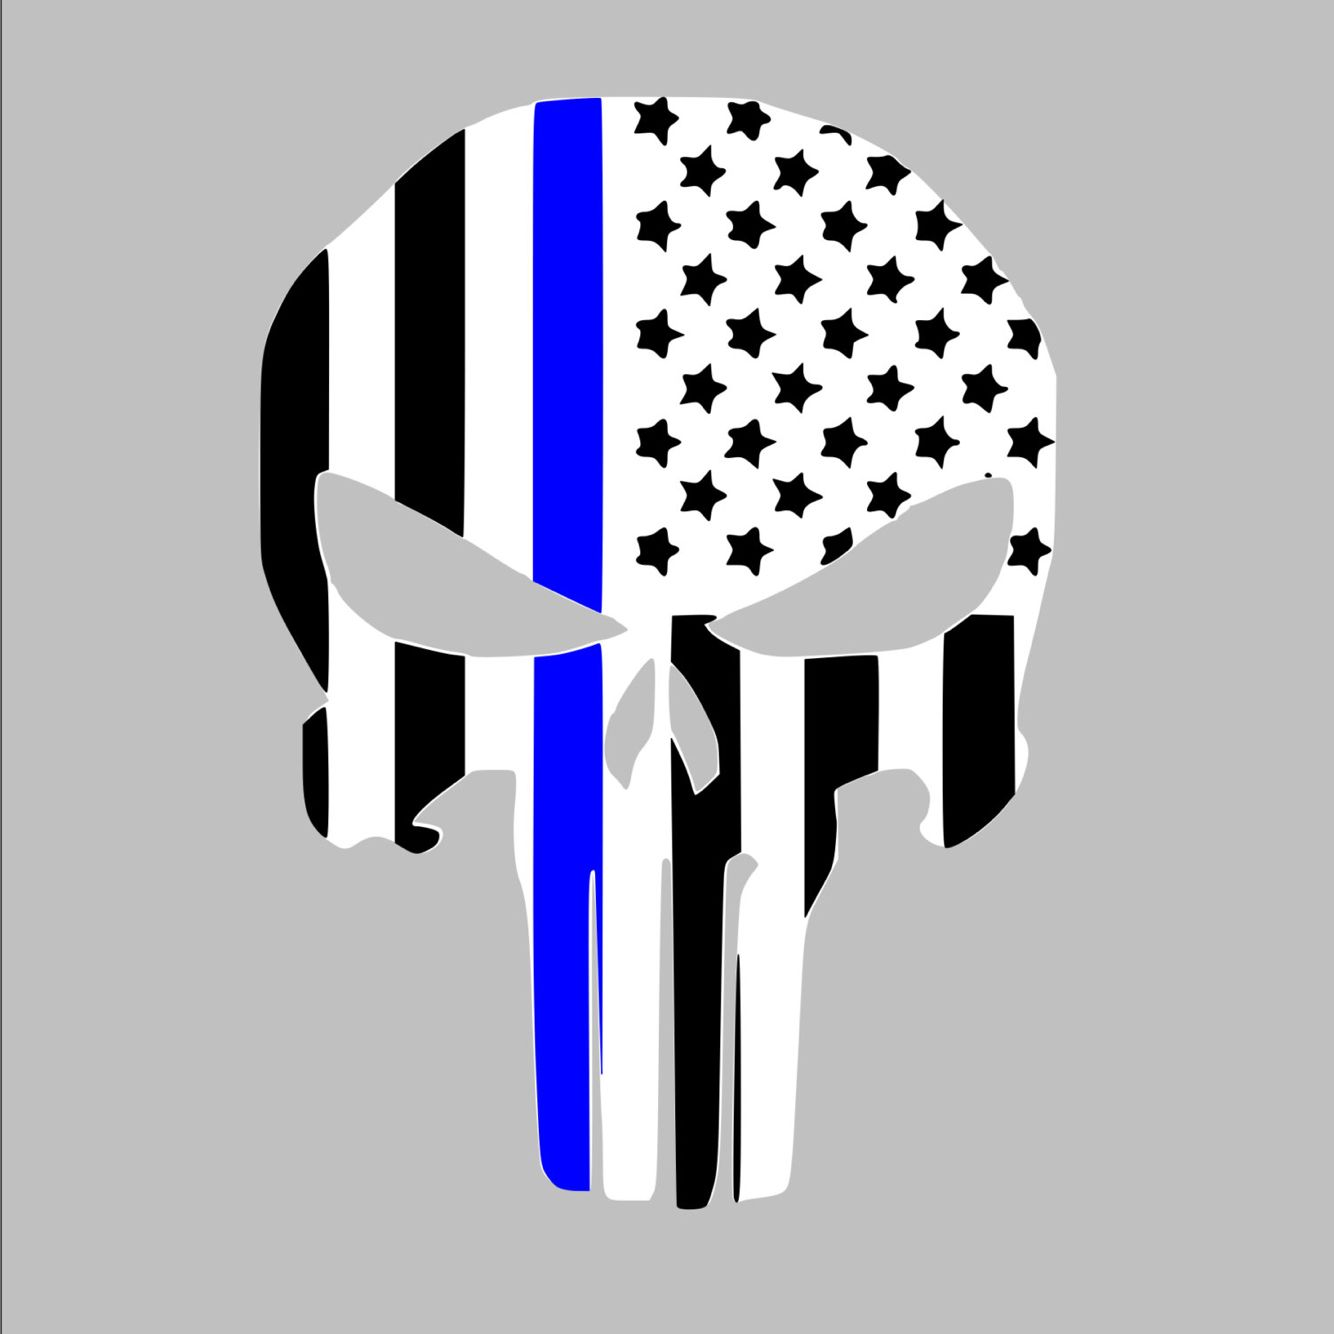 Thin Blue Line Svg Cricut Pinterest Cricut Silhouettes And - How to make car decals with cricut expression